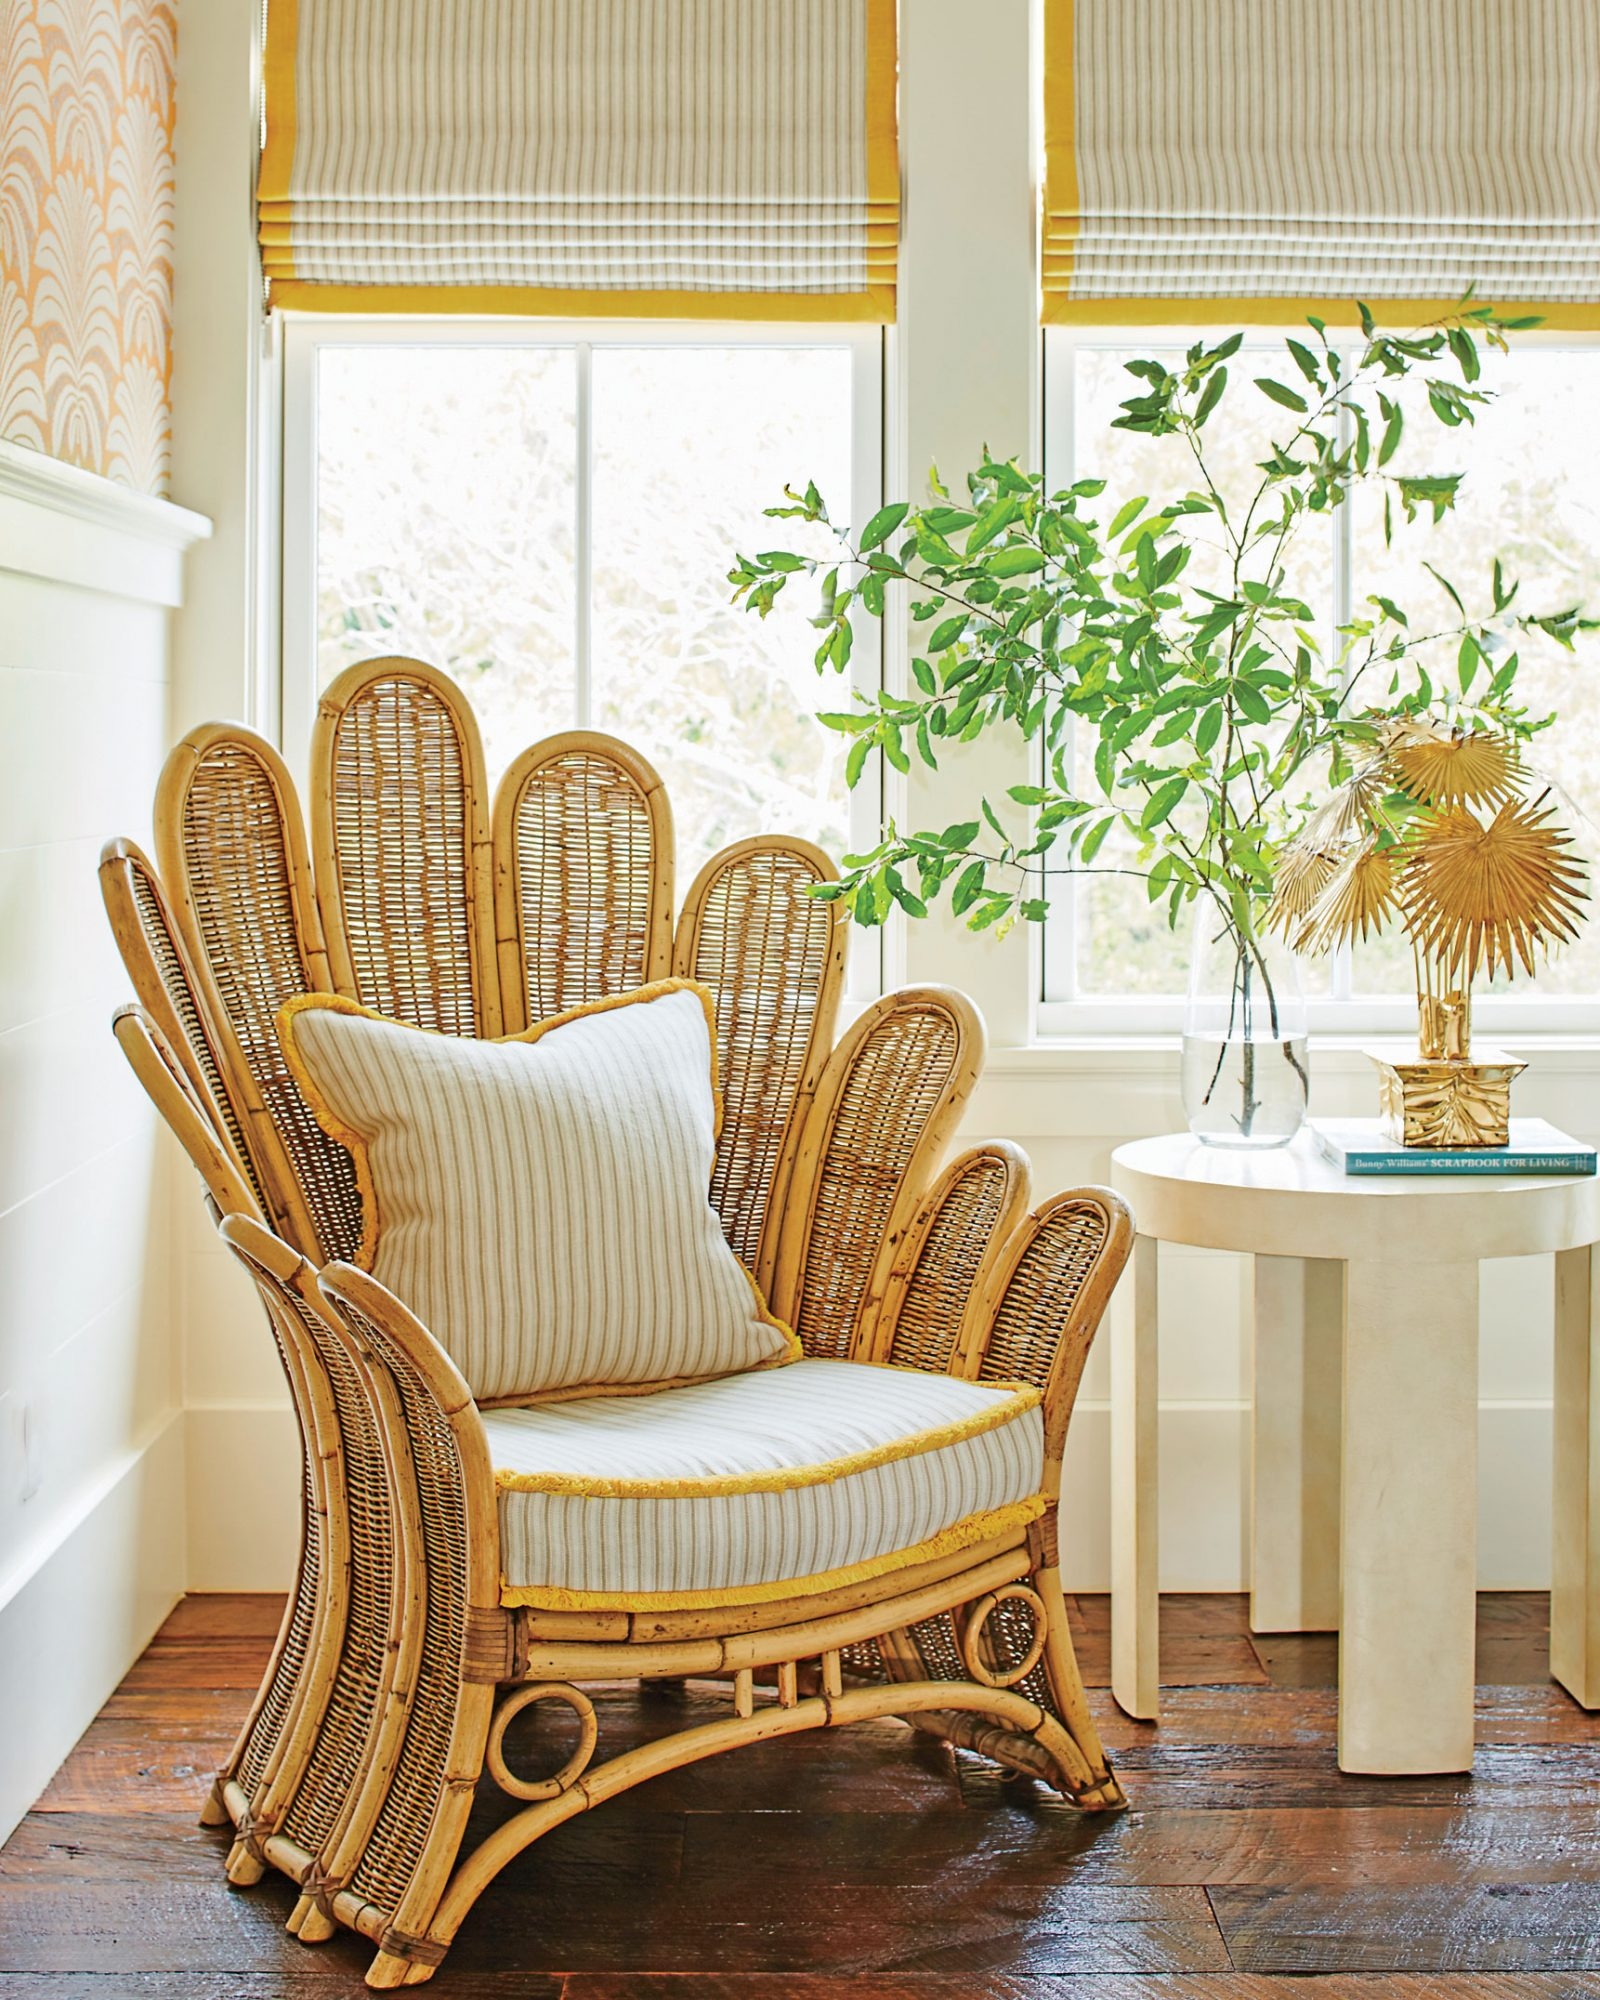 8 Ways to Decorate with Vintage Finds